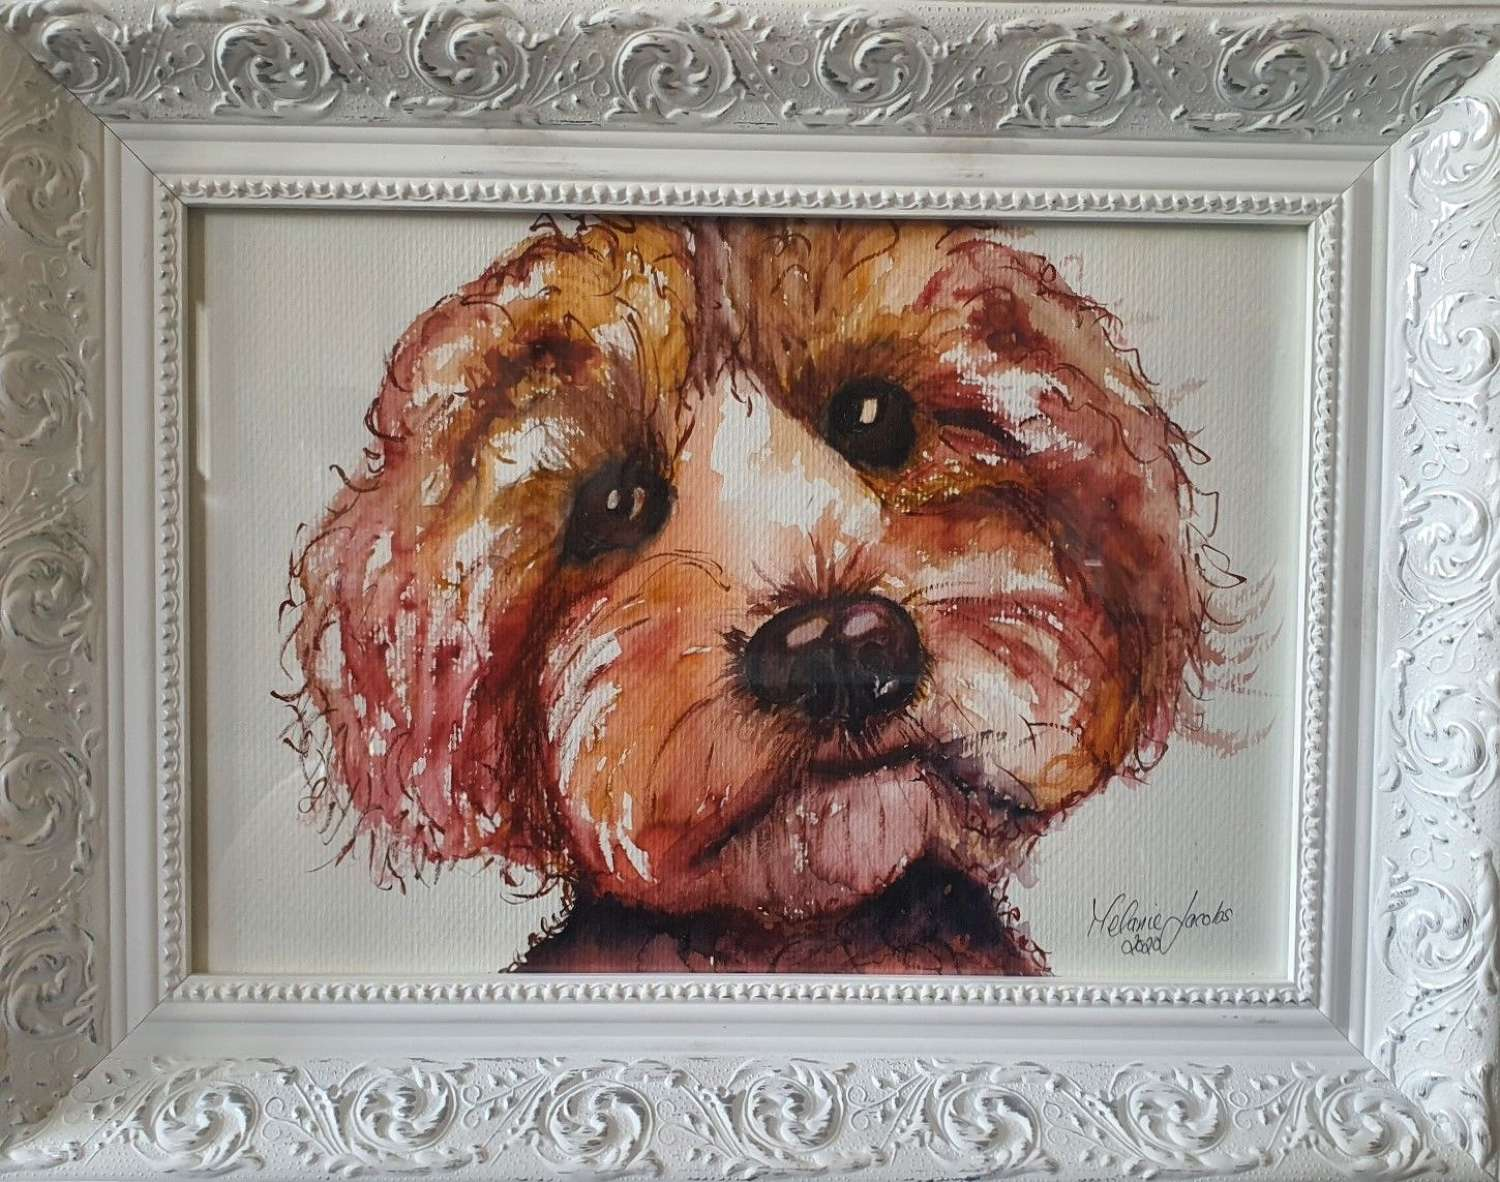 'Doodle' - Original Watercolour By Melanie Jacobs